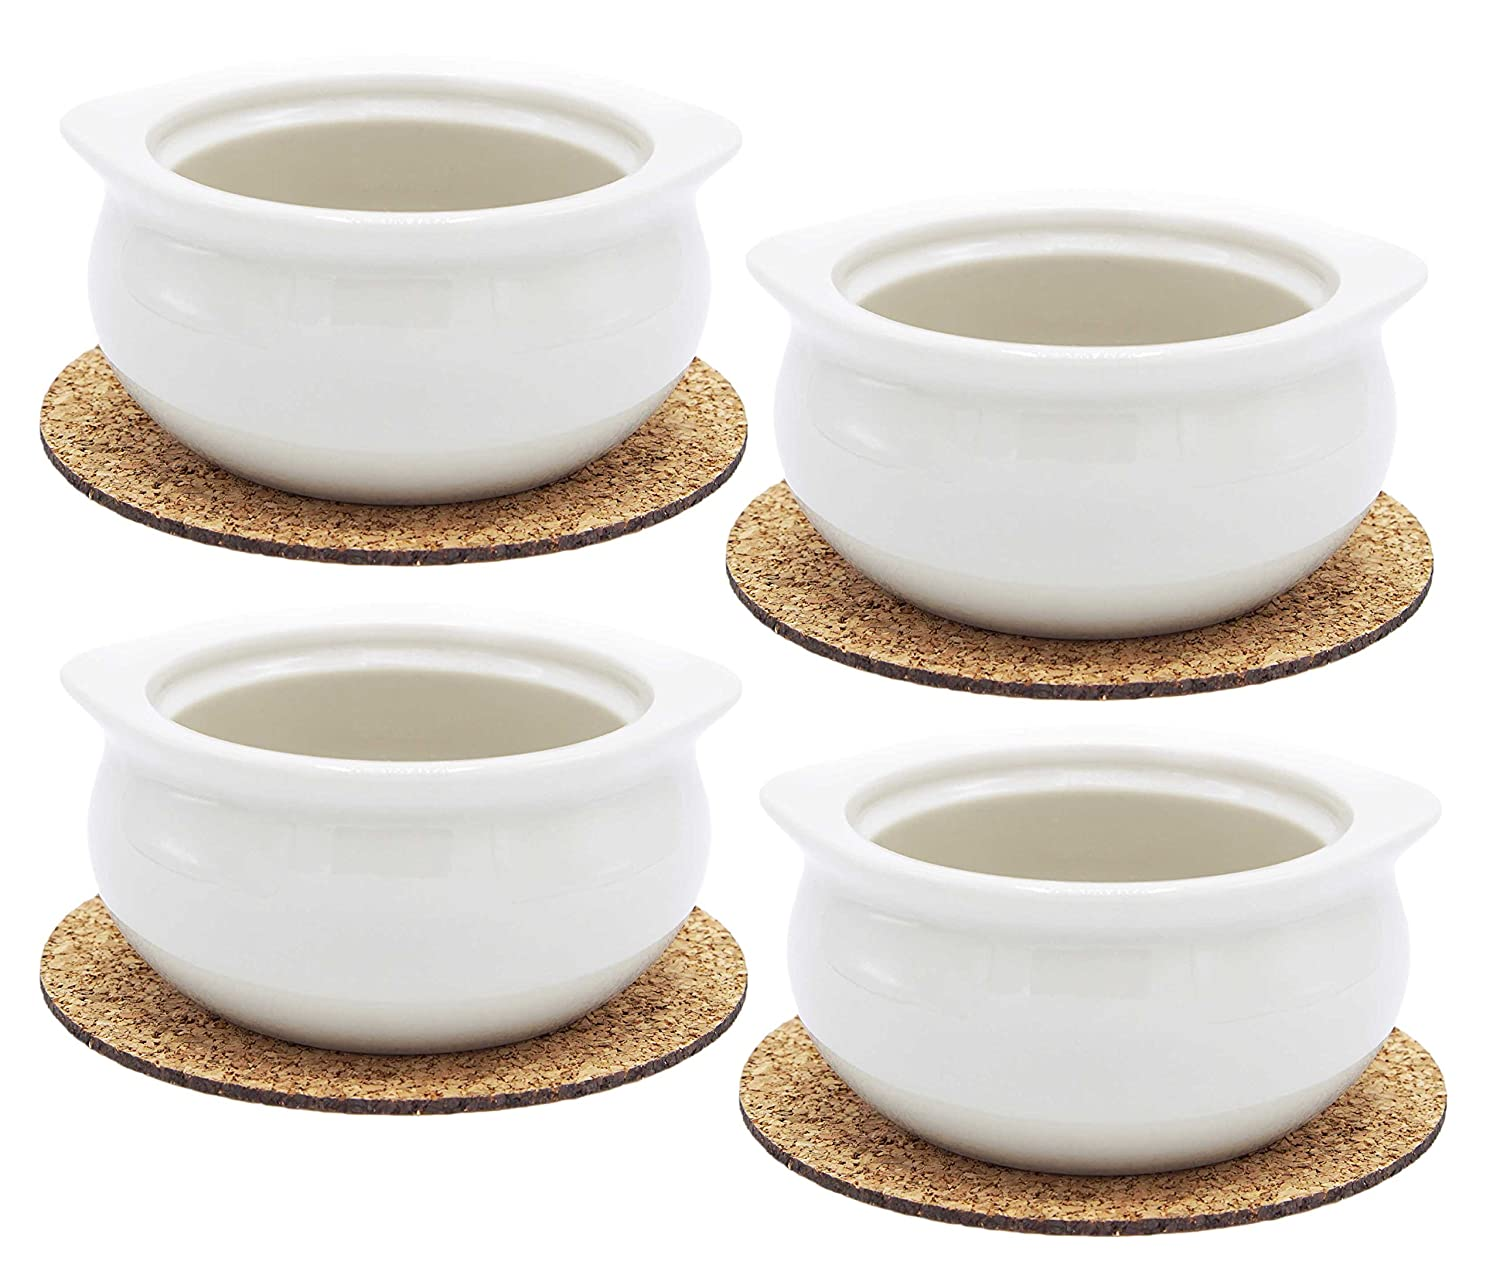 Ecodesign Bowls - Set of 4 - Premium French Onion Soup Bowls - Off-White - 300 ml (10.5 Ounce) with the Cork Coasters – Porcelain Classic European Style Healthy Portion Crocks– Oven/Microwave safe